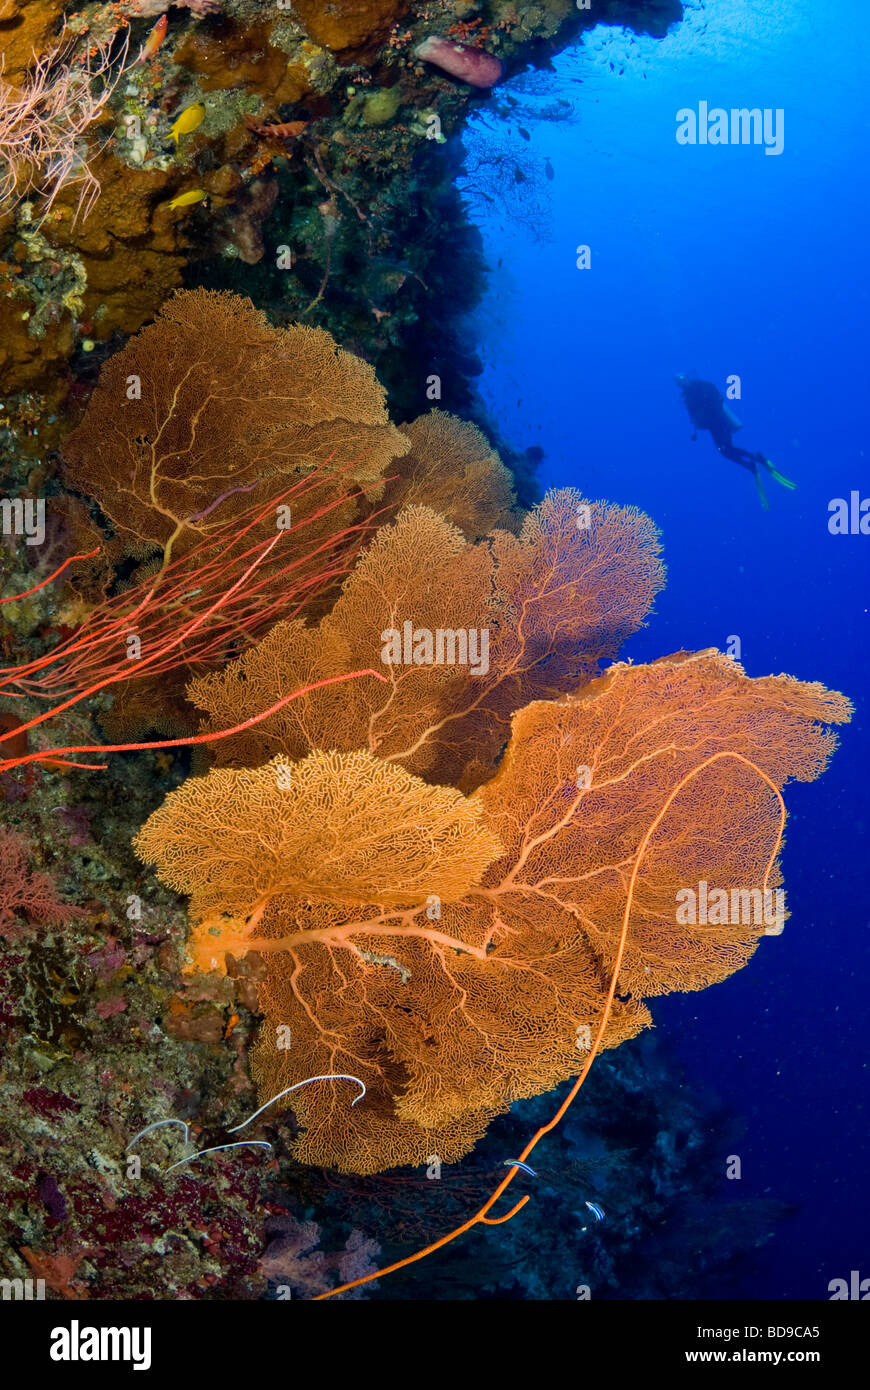 Big gorgonian sea fans and scubadiver, Philippines - Stock Image